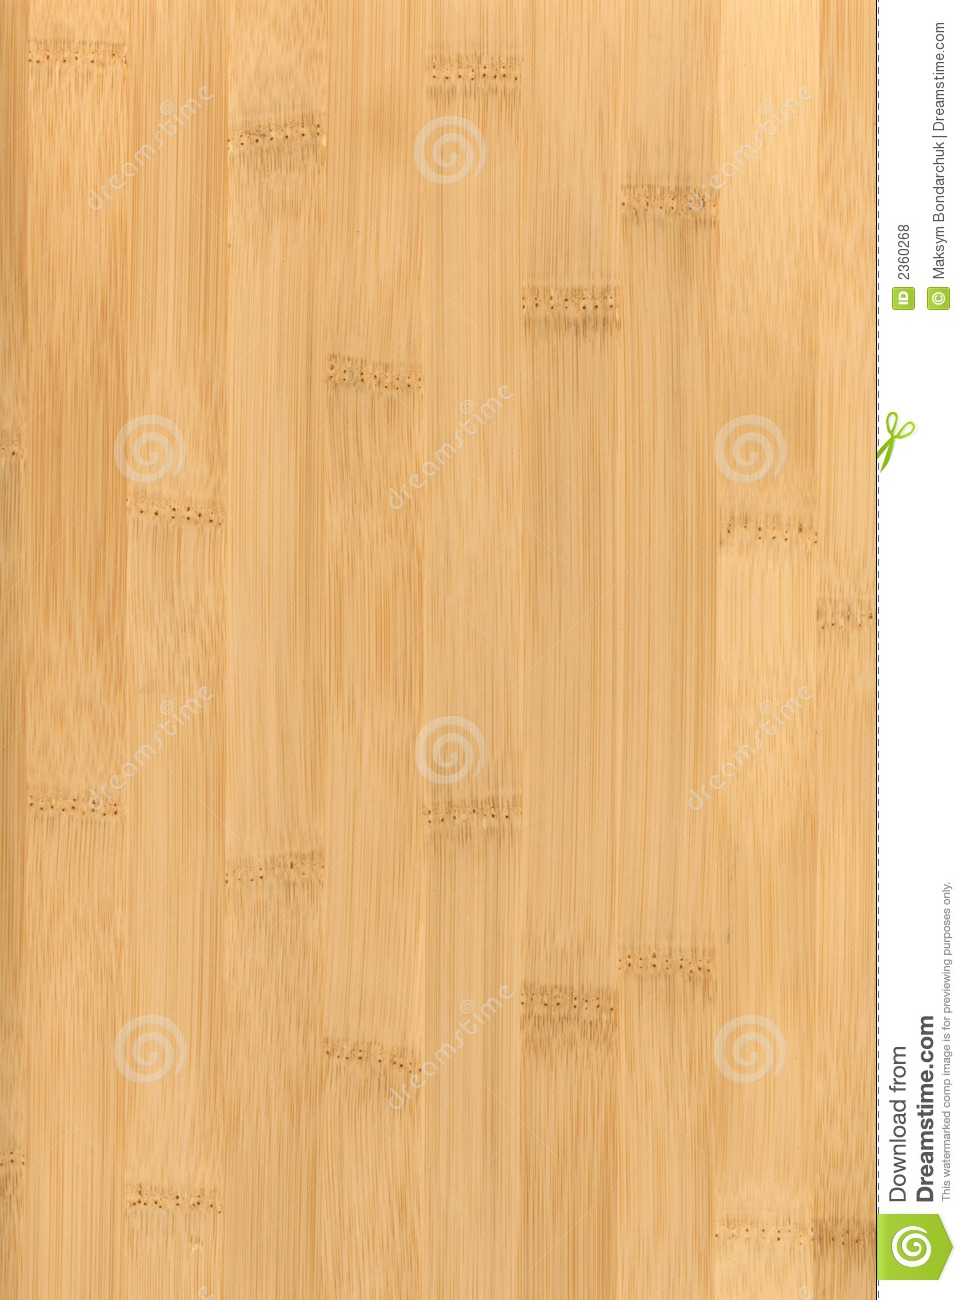 Bamboo Parquet Texture Royalty Free Stock Photos Image